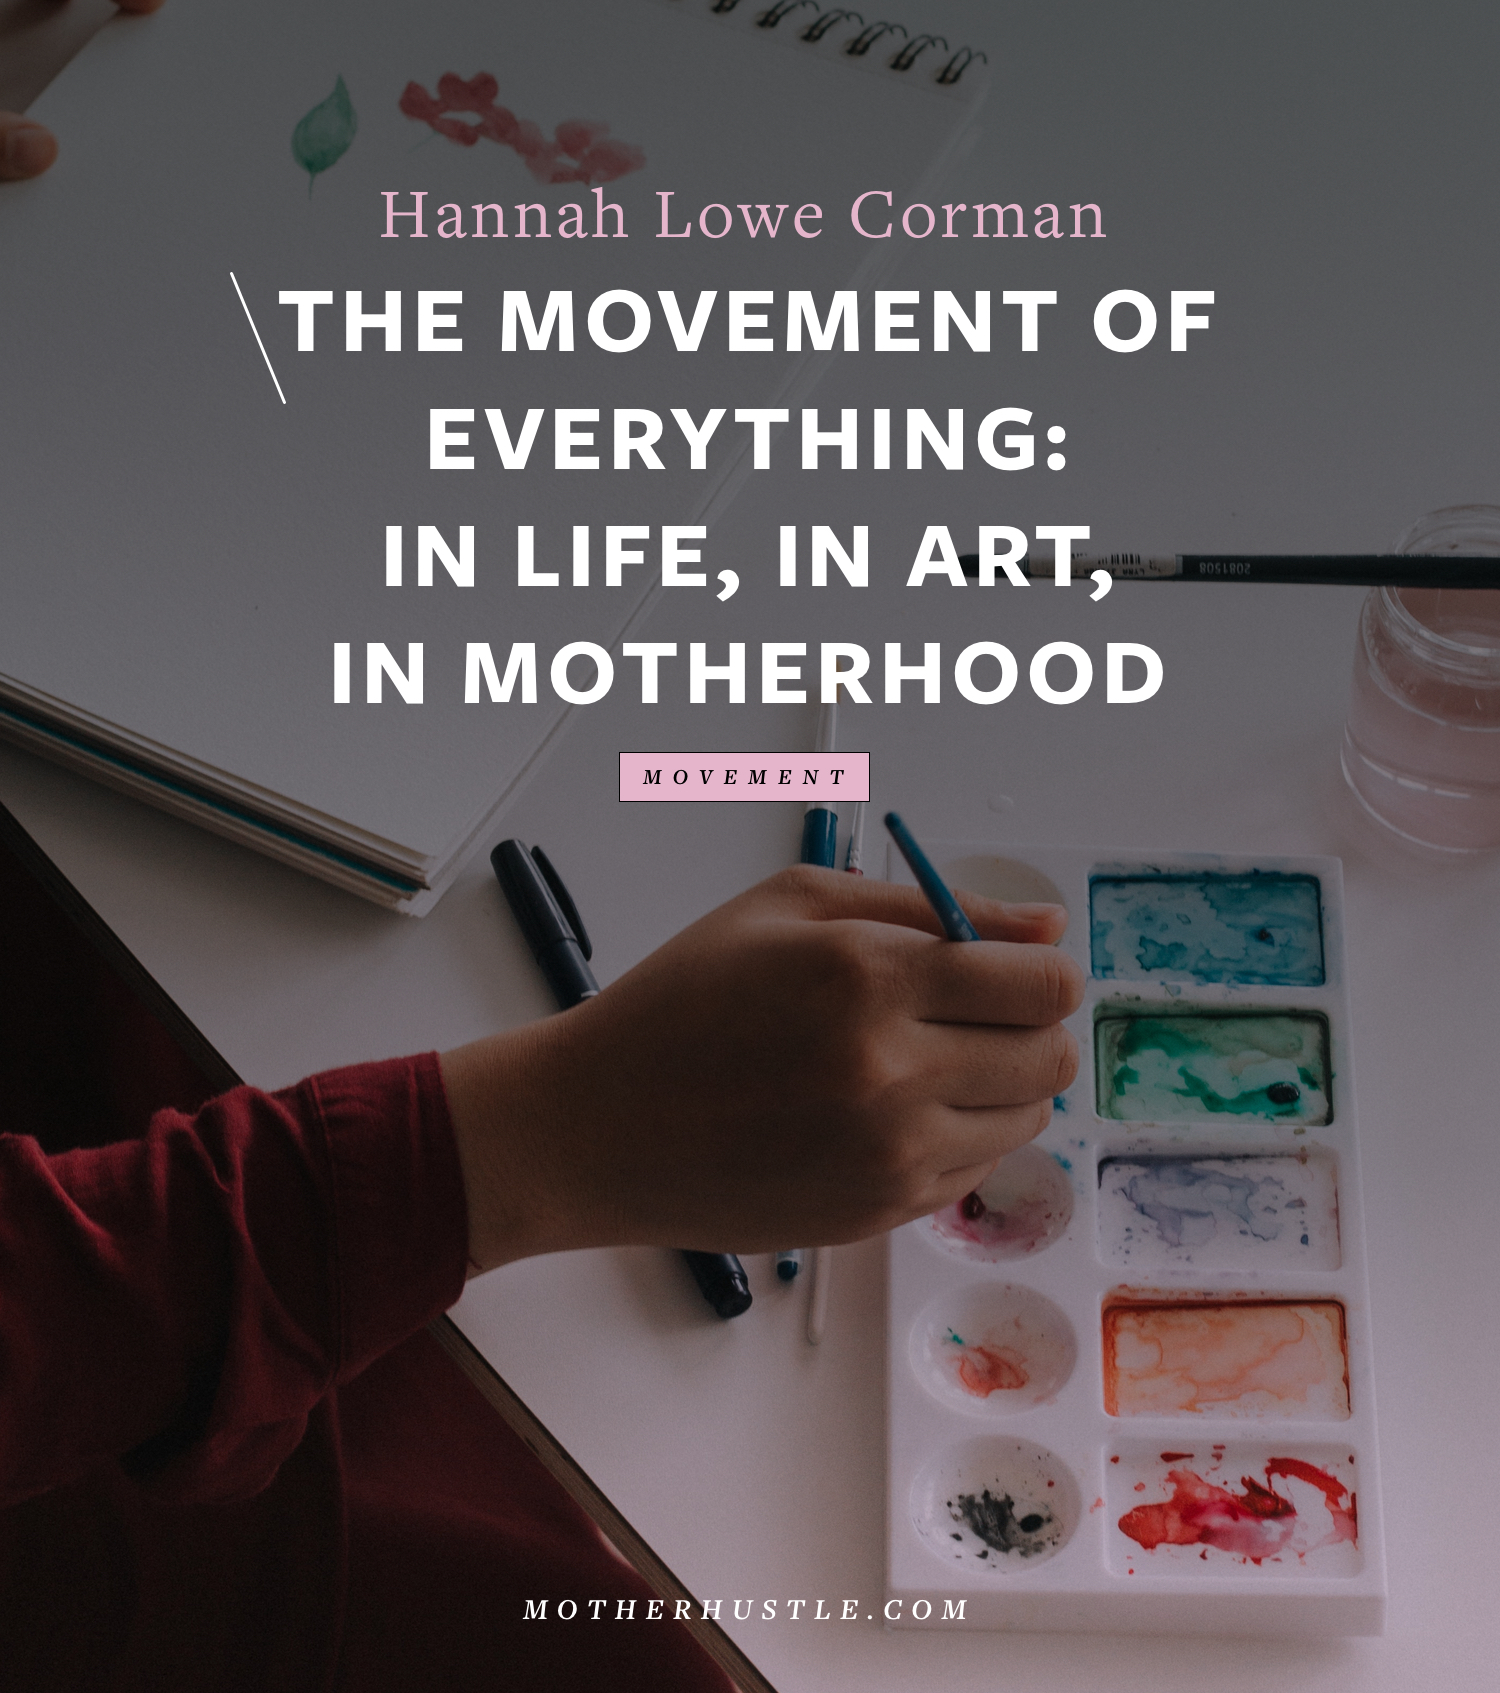 The Movement of Everything- in Life, in Art, in Motherhood- BY Hannah Lowe Corman for MotherHustle